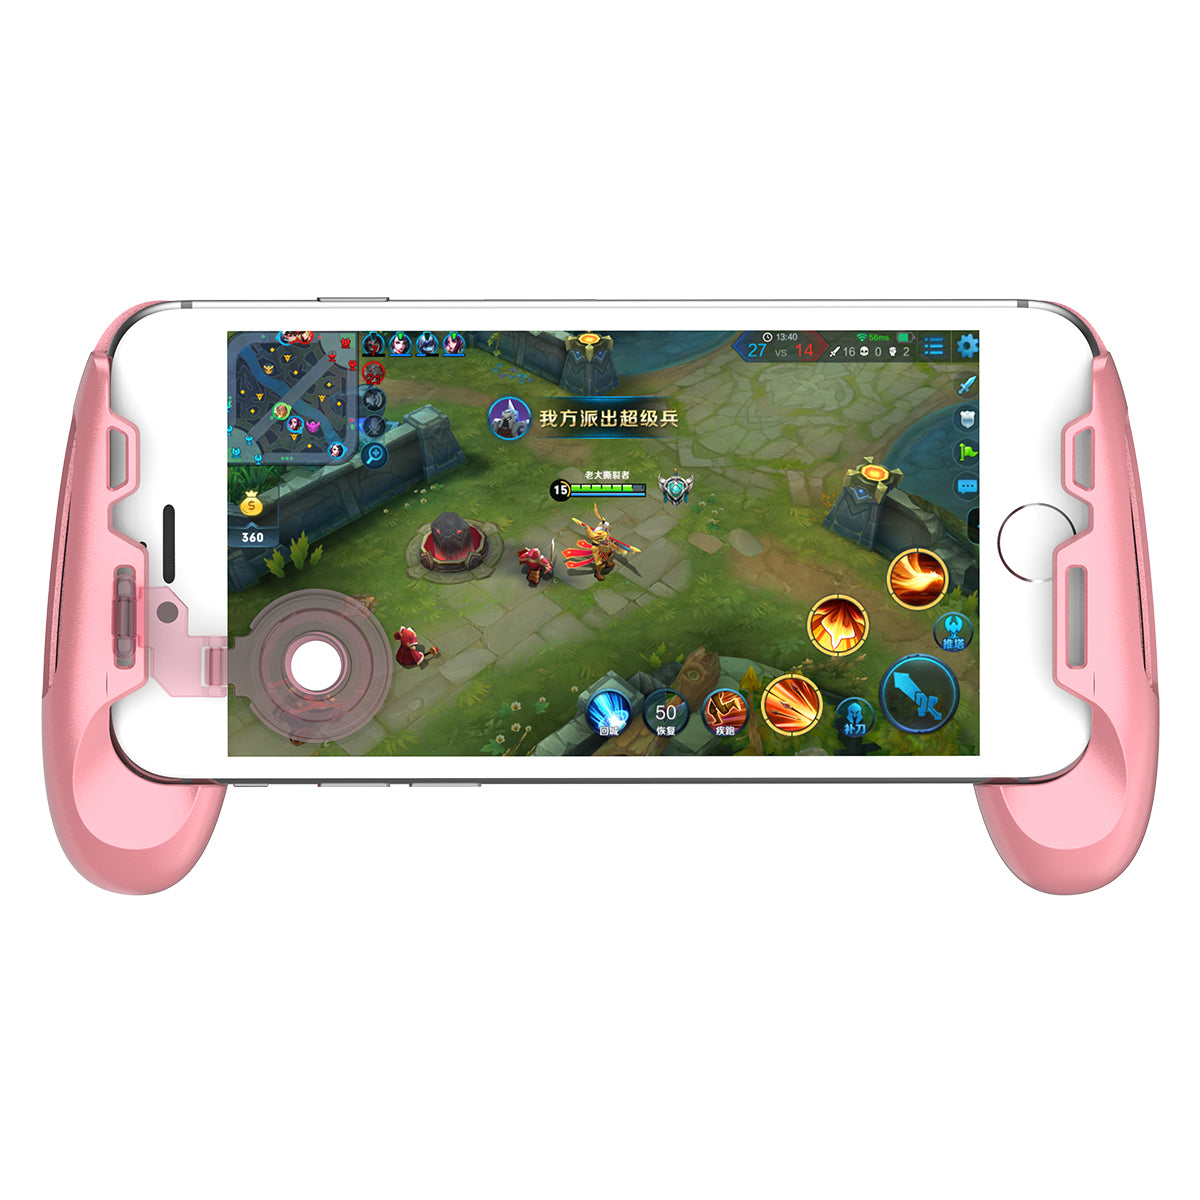 MOBA Controller for Android & iPhone (Brawl Stars, Mobile Legends, PUBG, Fortnite, etc)